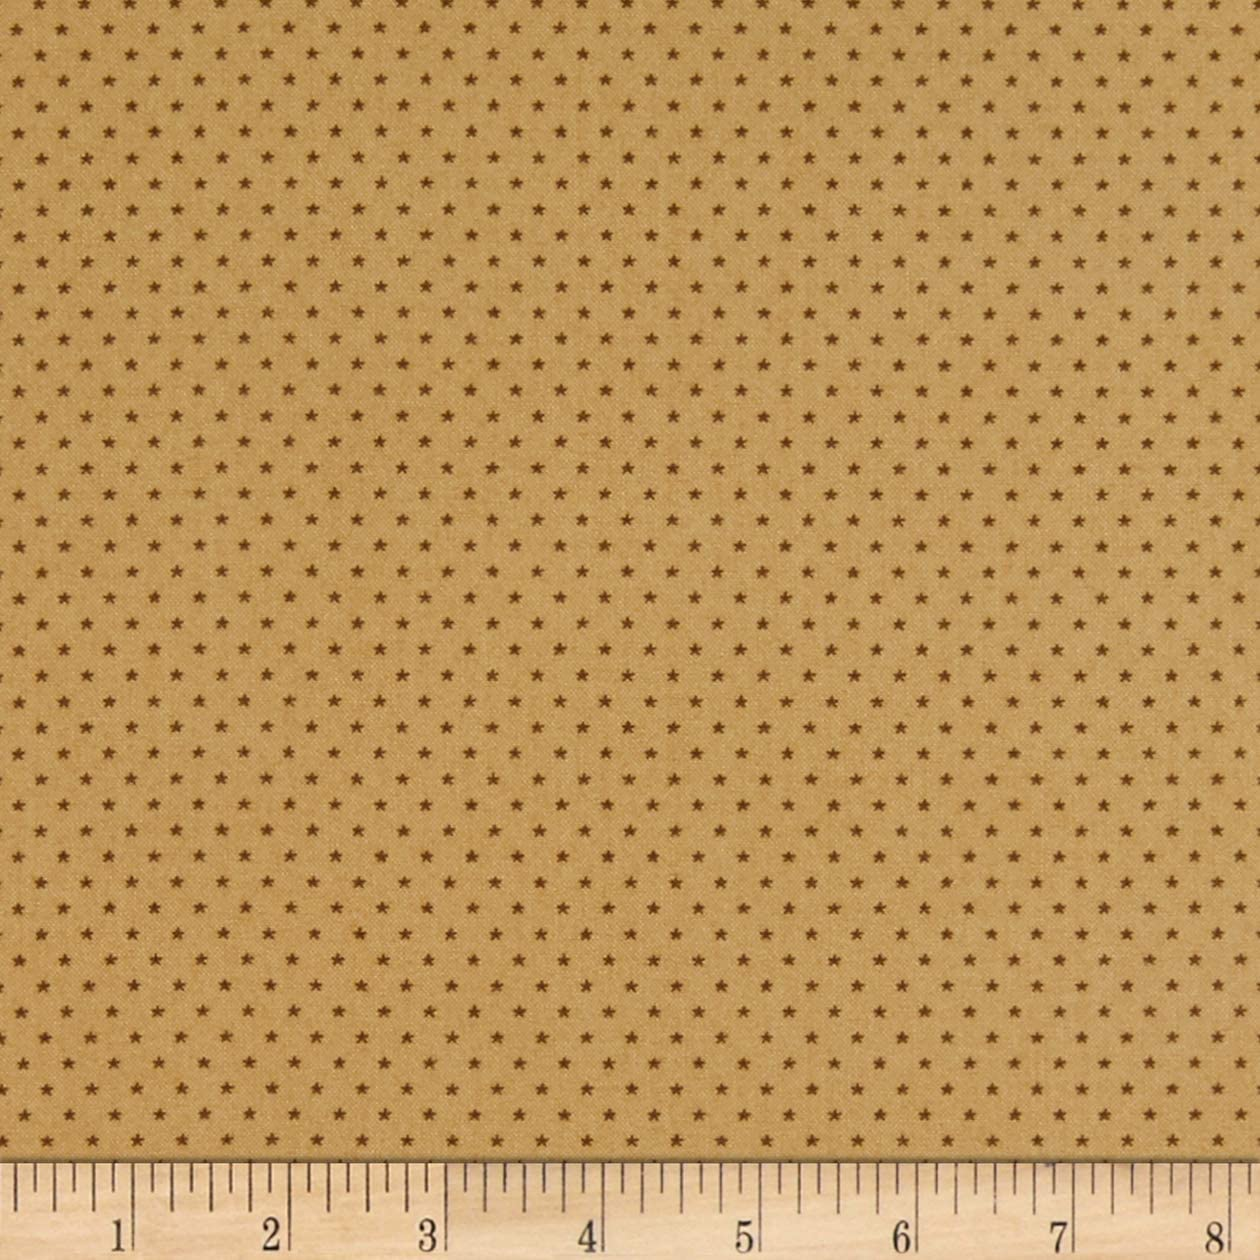 Andover Sonoma Stars Honey Fabric Fabric by the Yard